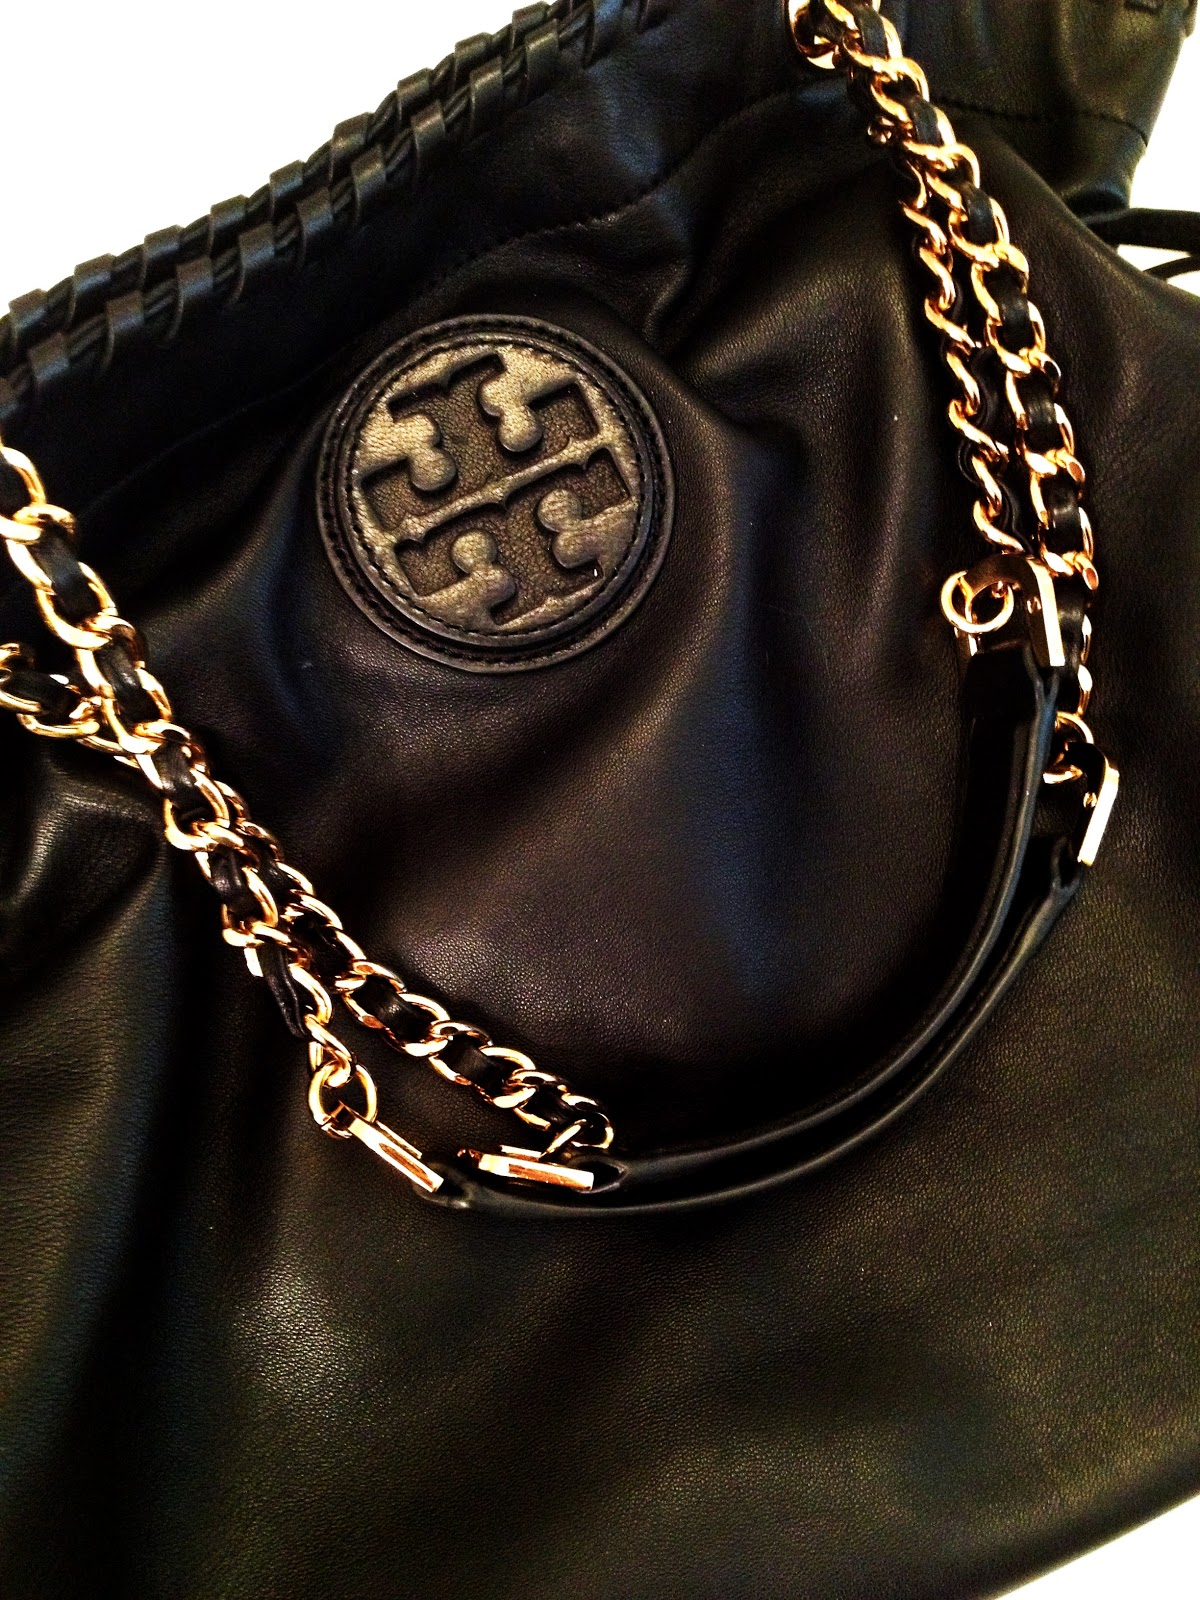 ea26dc510c62 Tory Burch Marion Tote. Here are some more similar chain-handled shoulder  bags that I love.